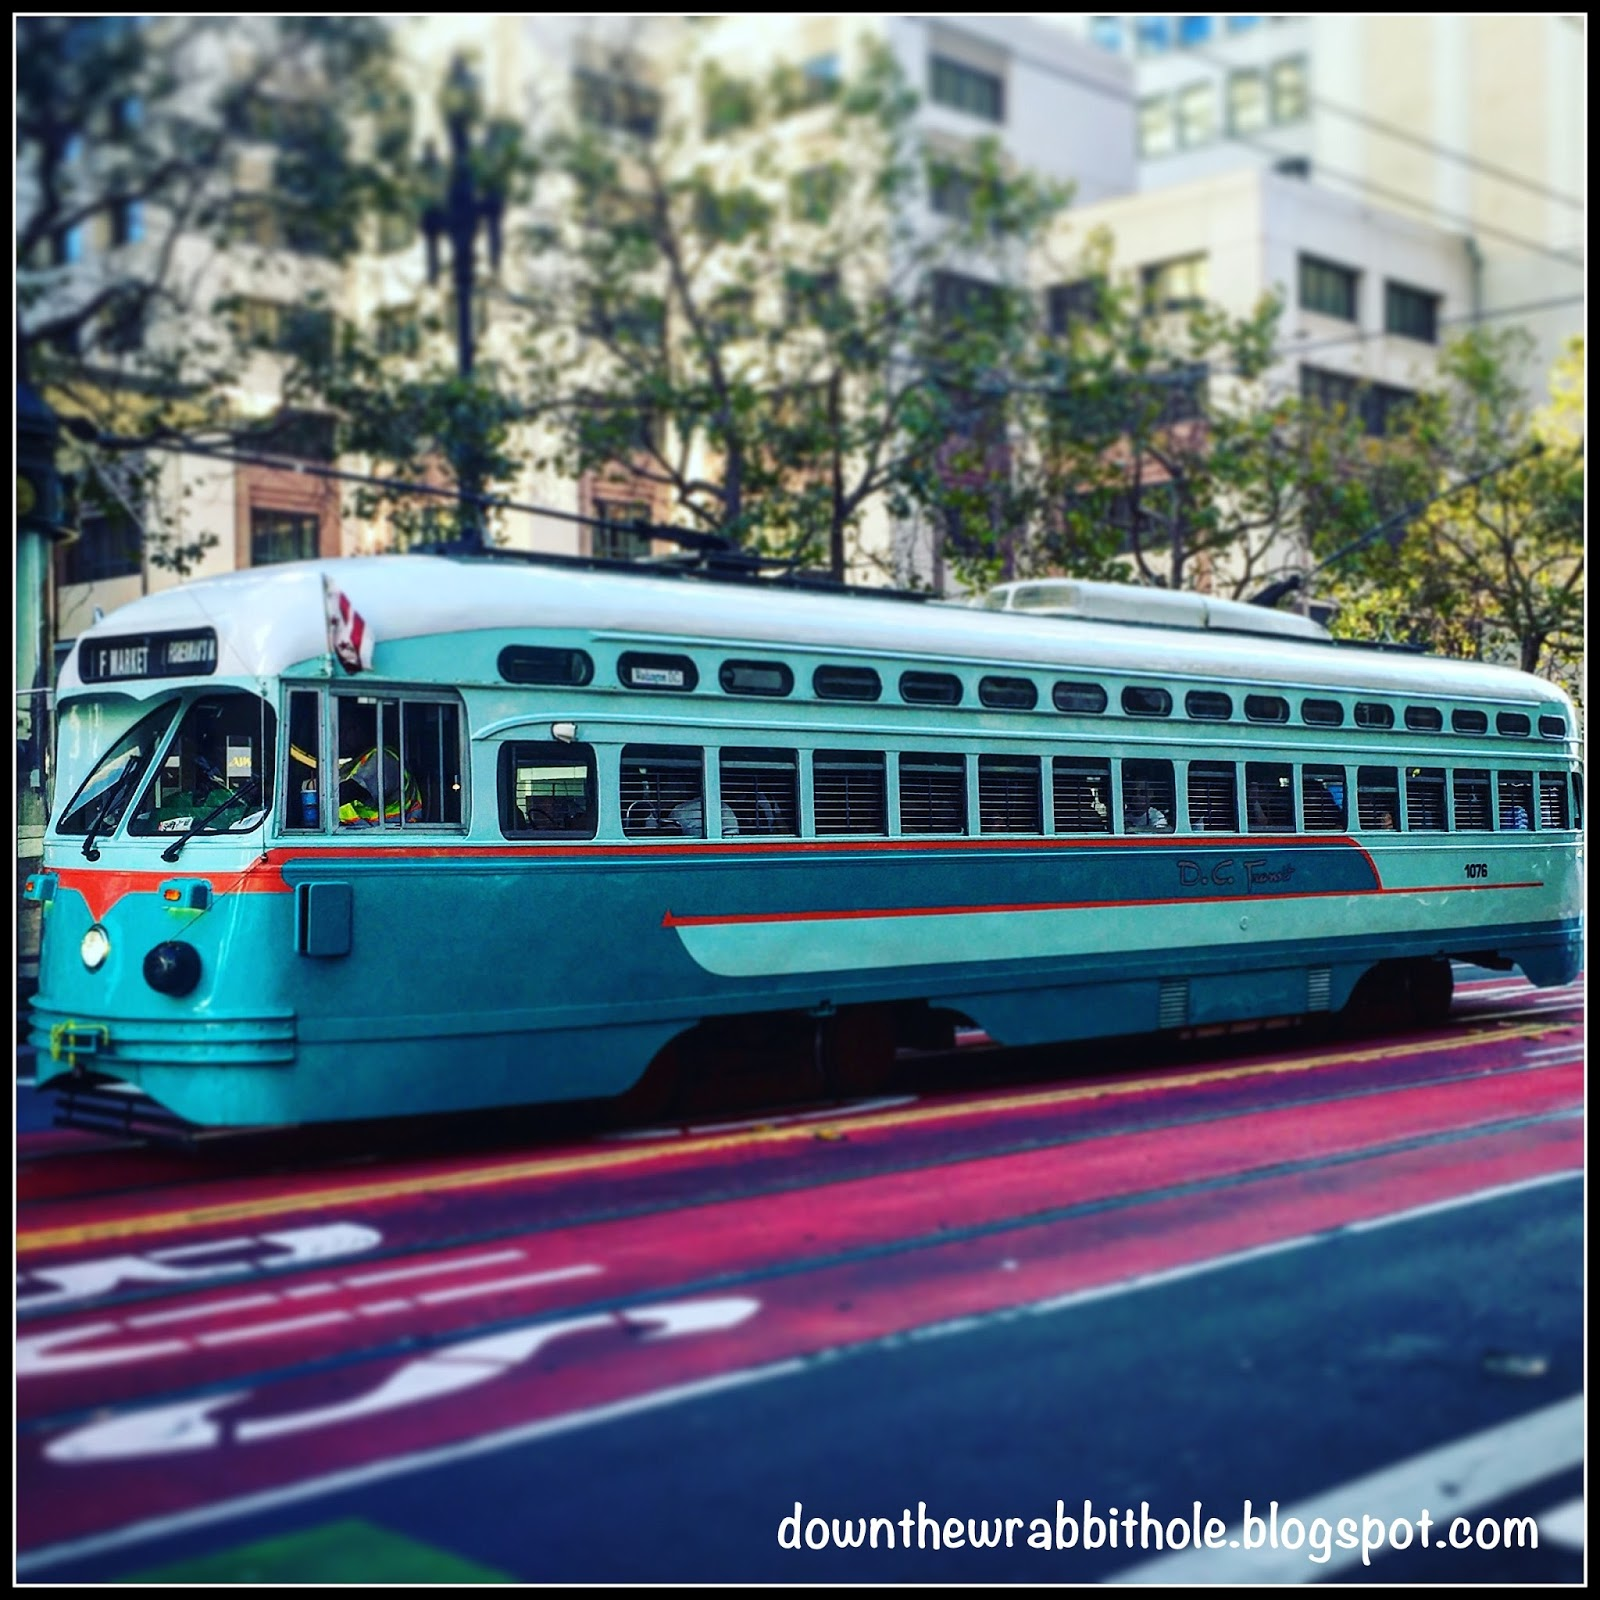 Riding The Rails: A Guide To San Francisco's Cable Car System